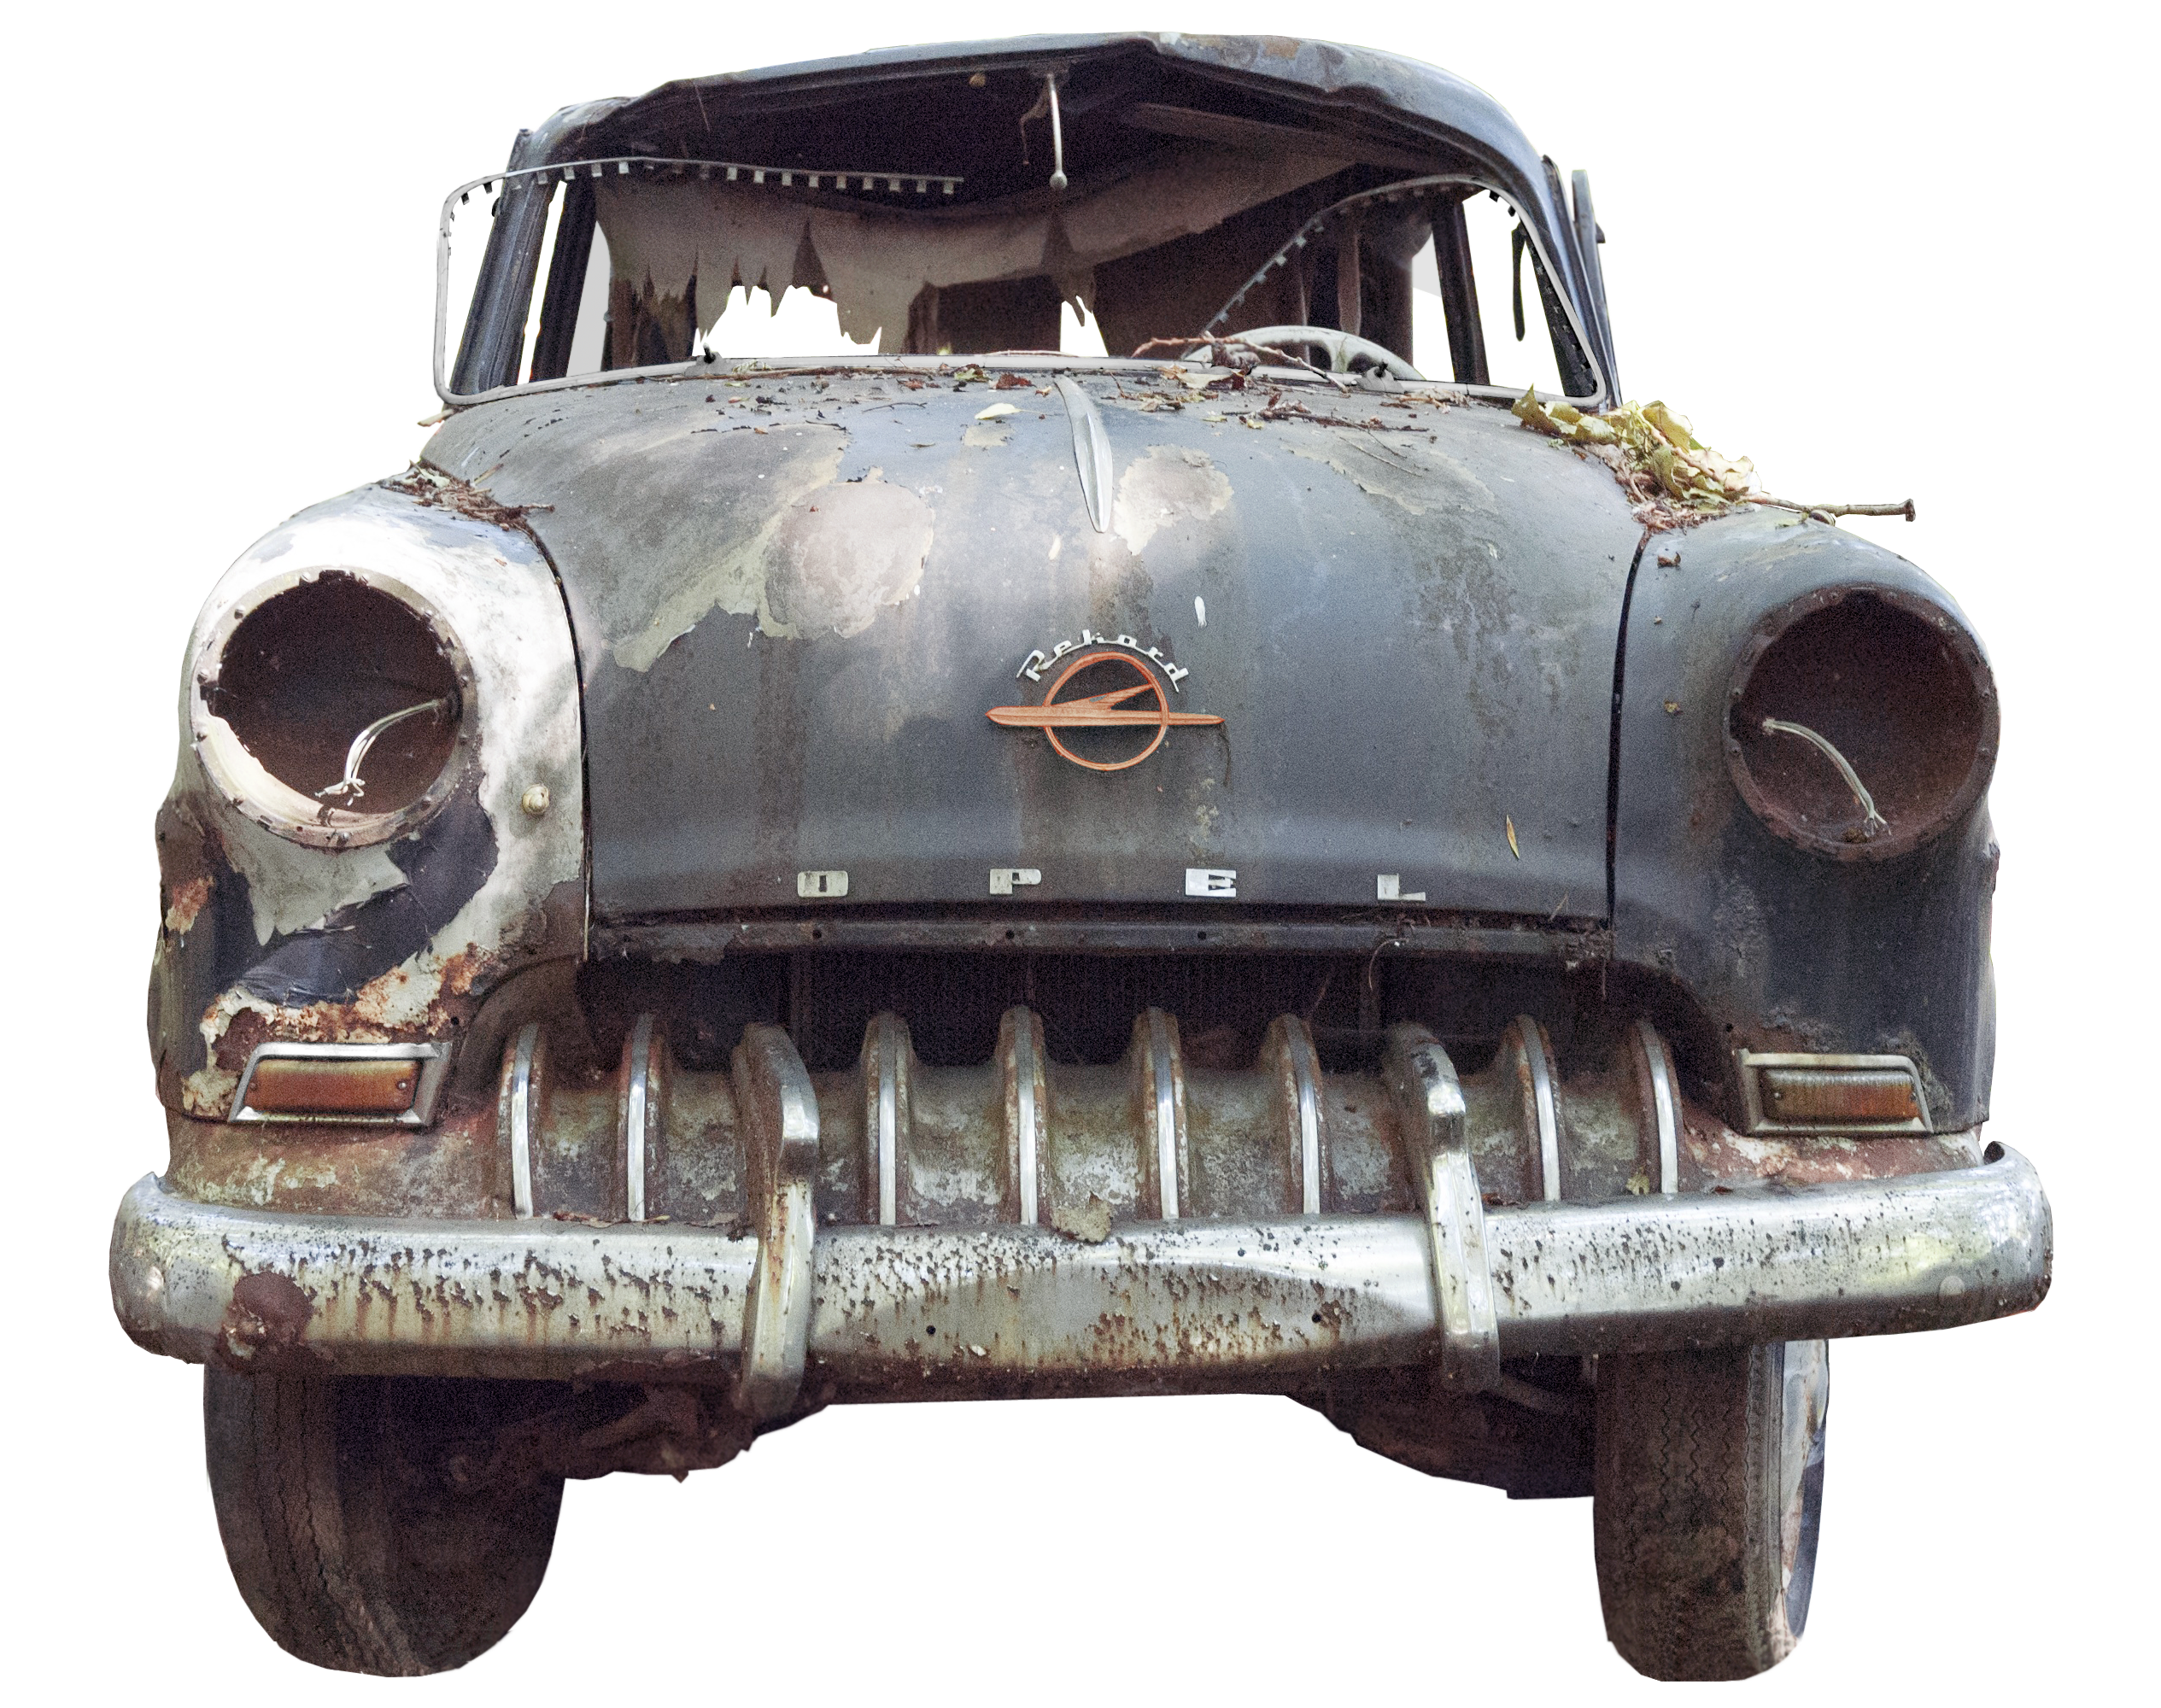 PNG images, PNGs, Wreck, Wreckage, Rust, Rusty, Damaged ...